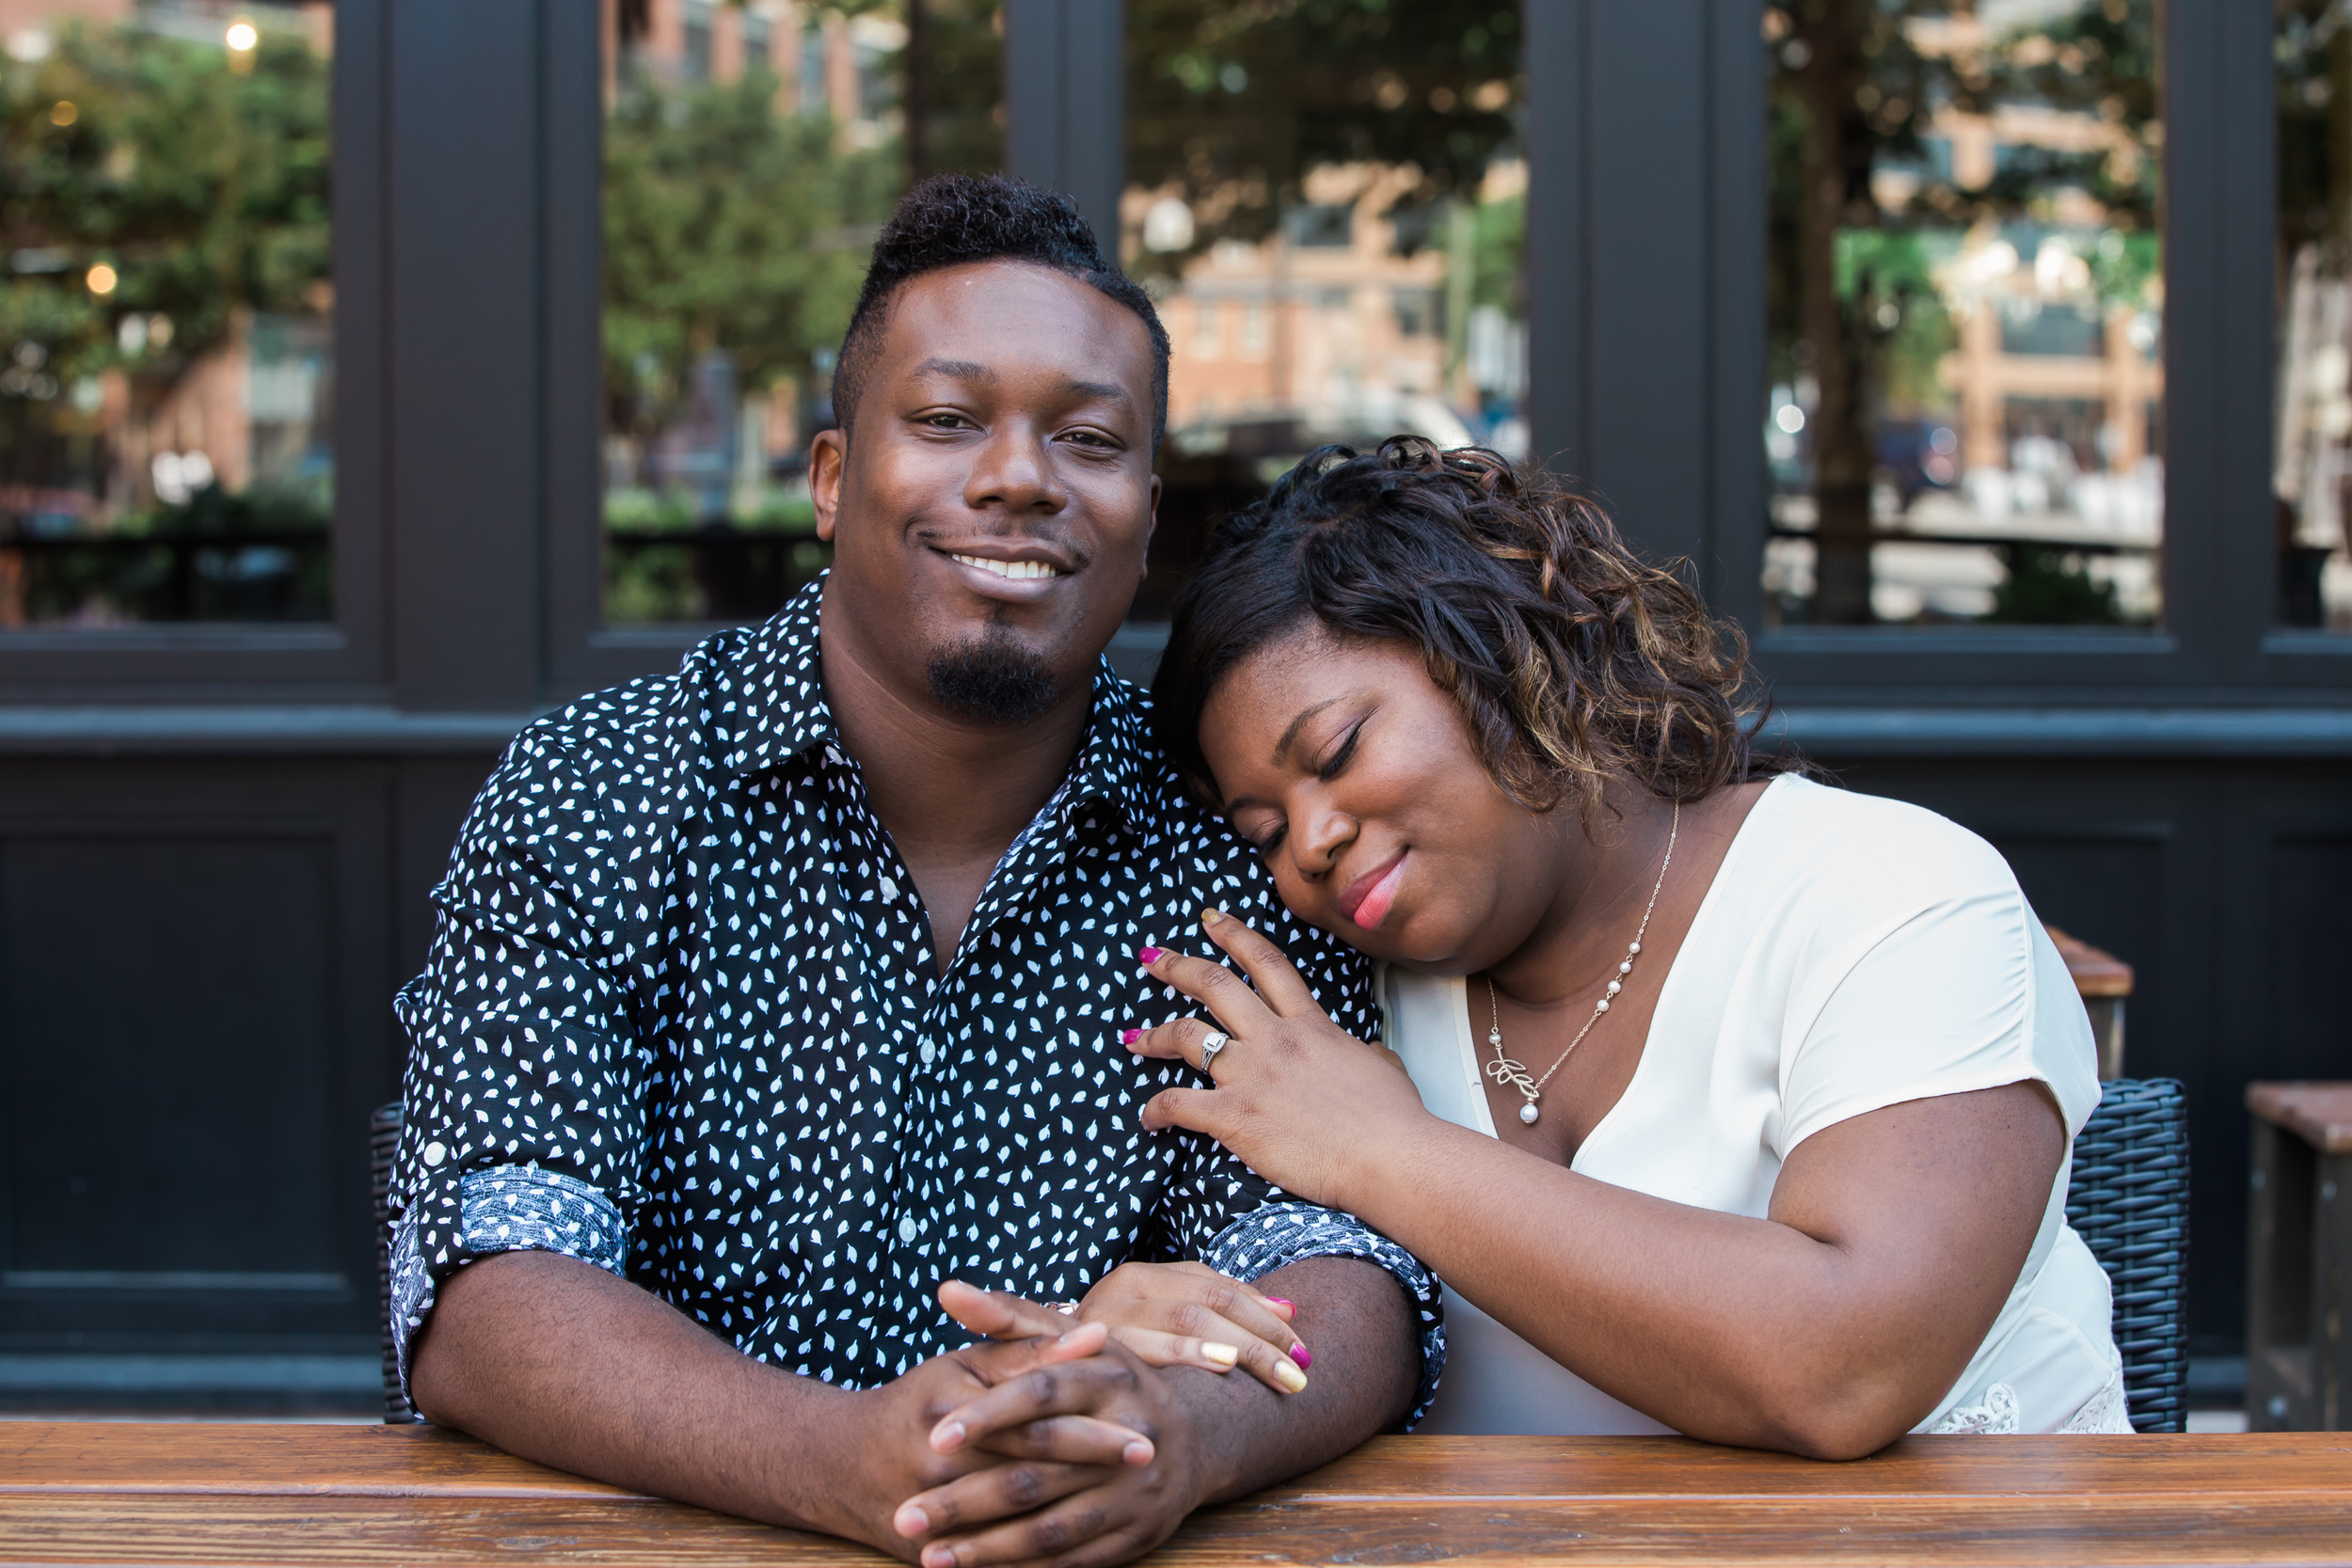 Engagement Session in Fells Point at Bond Street Social